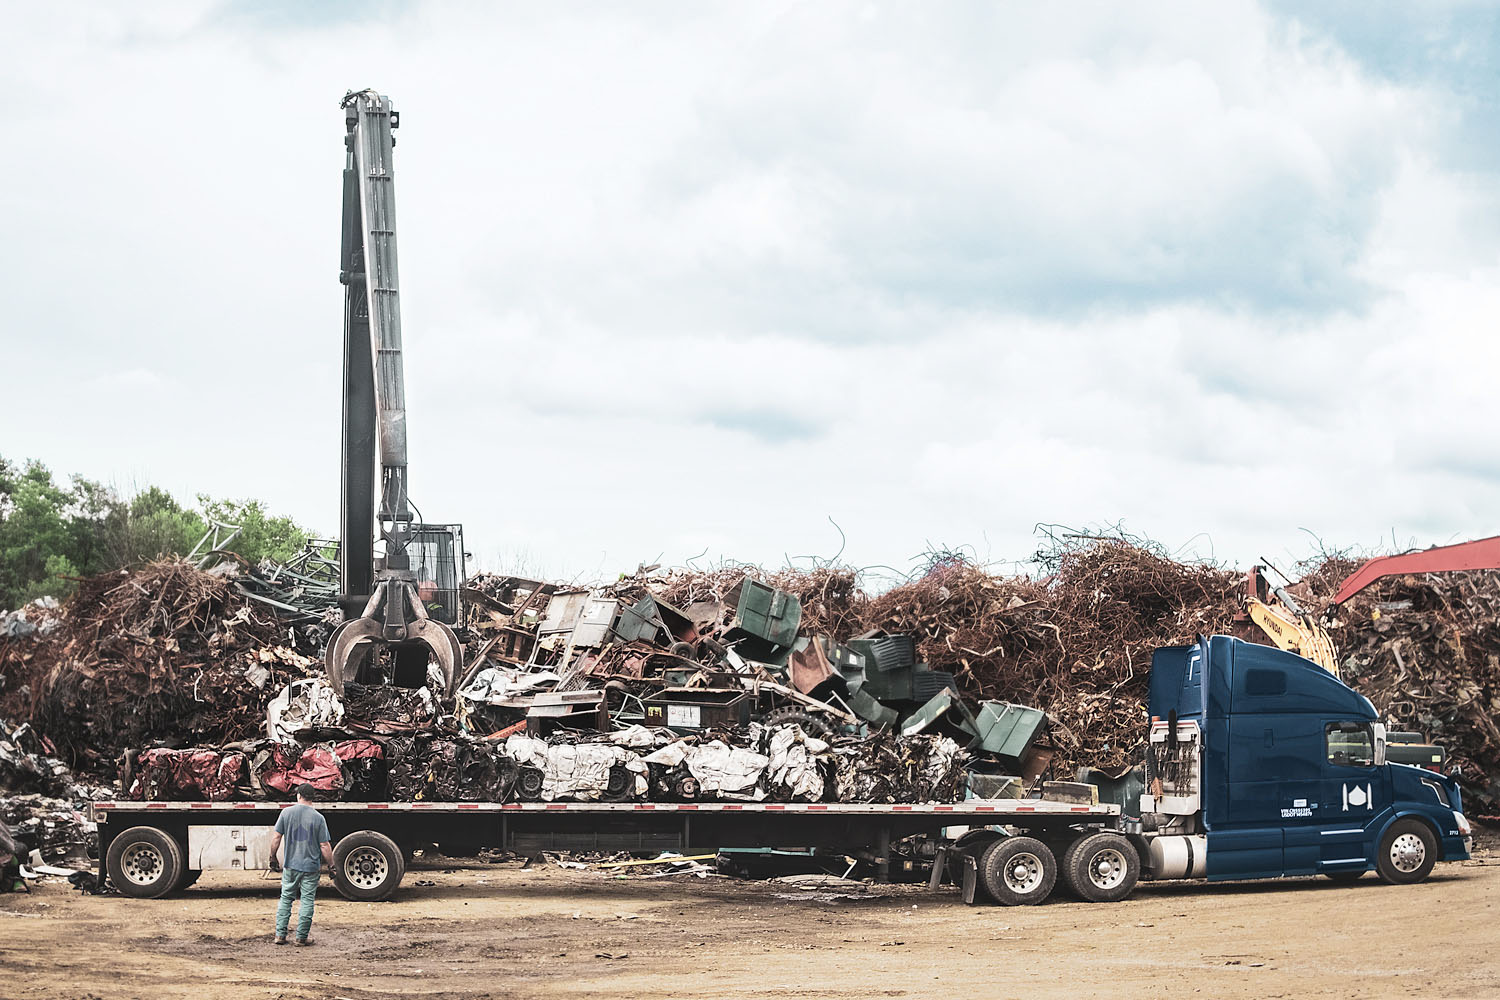 stuff-recycling-flatbed-trucking.jpg